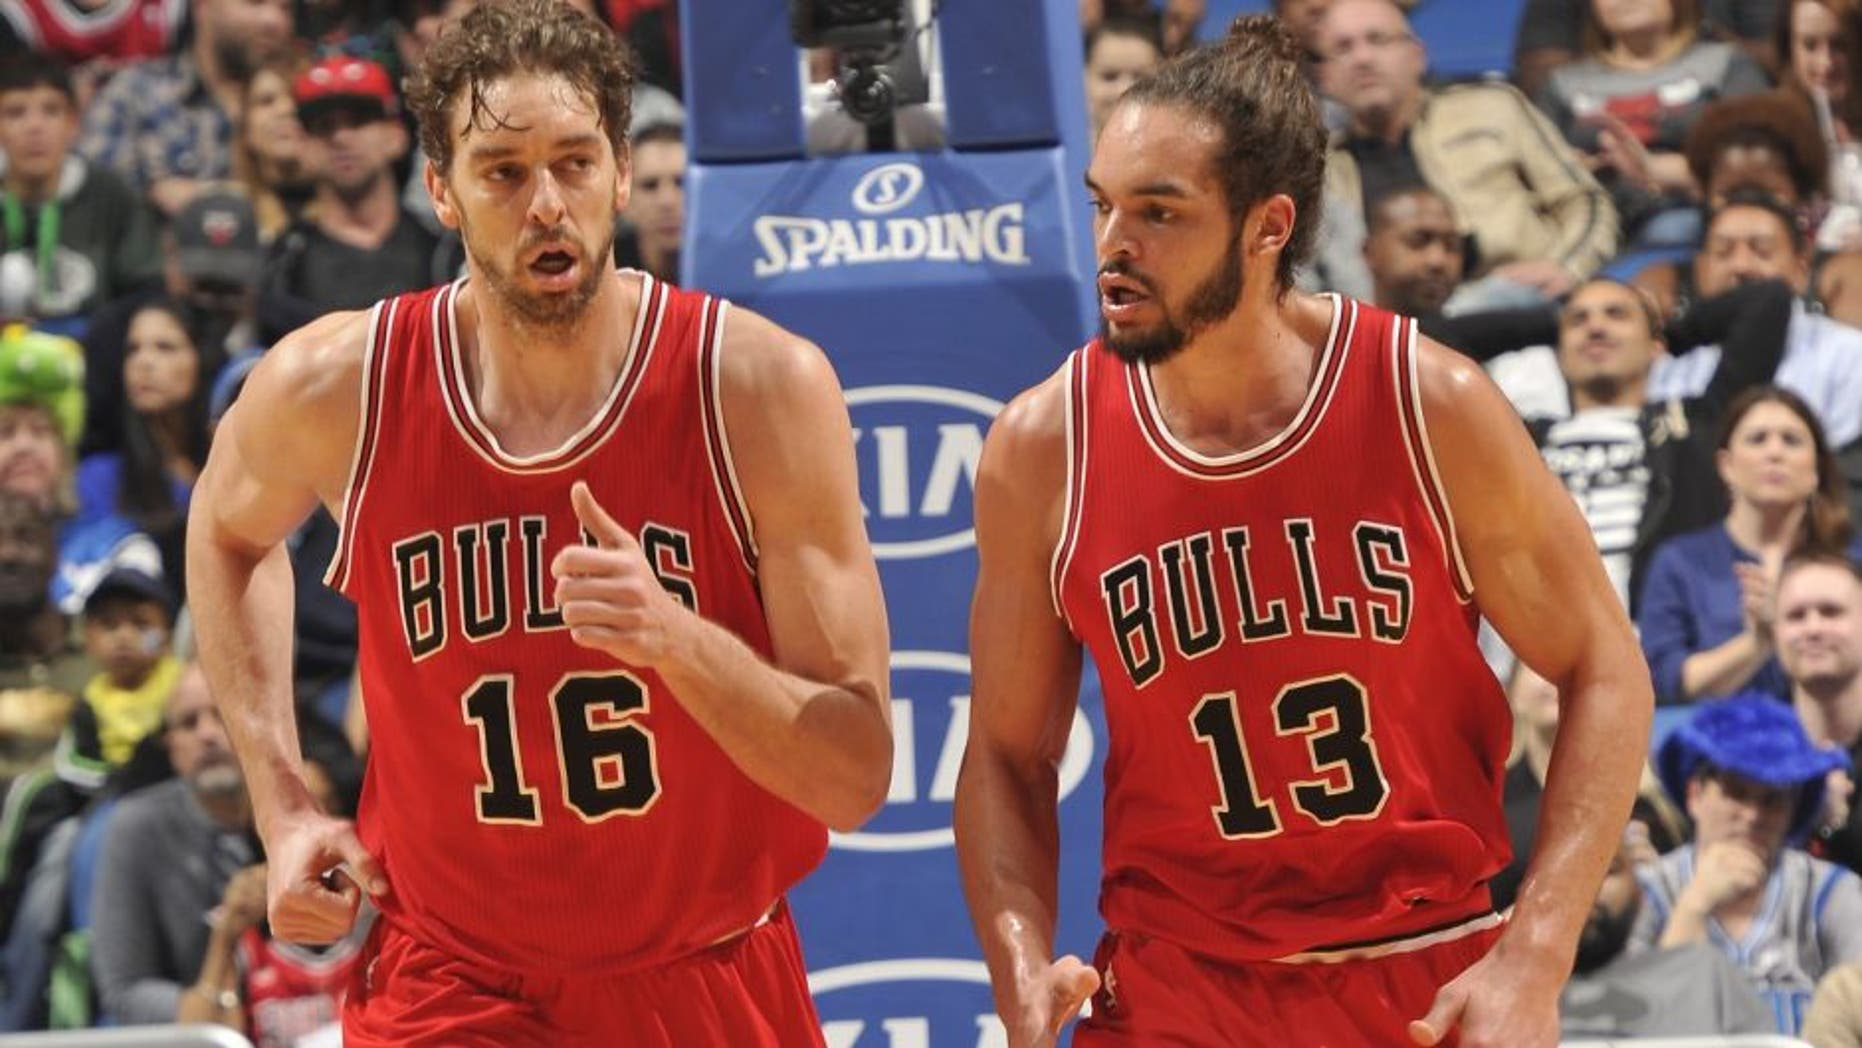 ORLANDO, FL - FEBRUARY 8: Pau Gasol #16 and Joakim Noah #13 of the Chicago Bulls during the game against the Orlando Magic on February 8, 2015 at Amway Center in Orlando, Florida. NOTE TO USER: User expressly acknowledges and agrees that, by downloading and or using this photograph, User is consenting to the terms and conditions of the Getty Images License Agreement. Mandatory Copyright Notice: Copyright 2015 NBAE (Photo by Fernando Medina/NBAE via Getty Images)